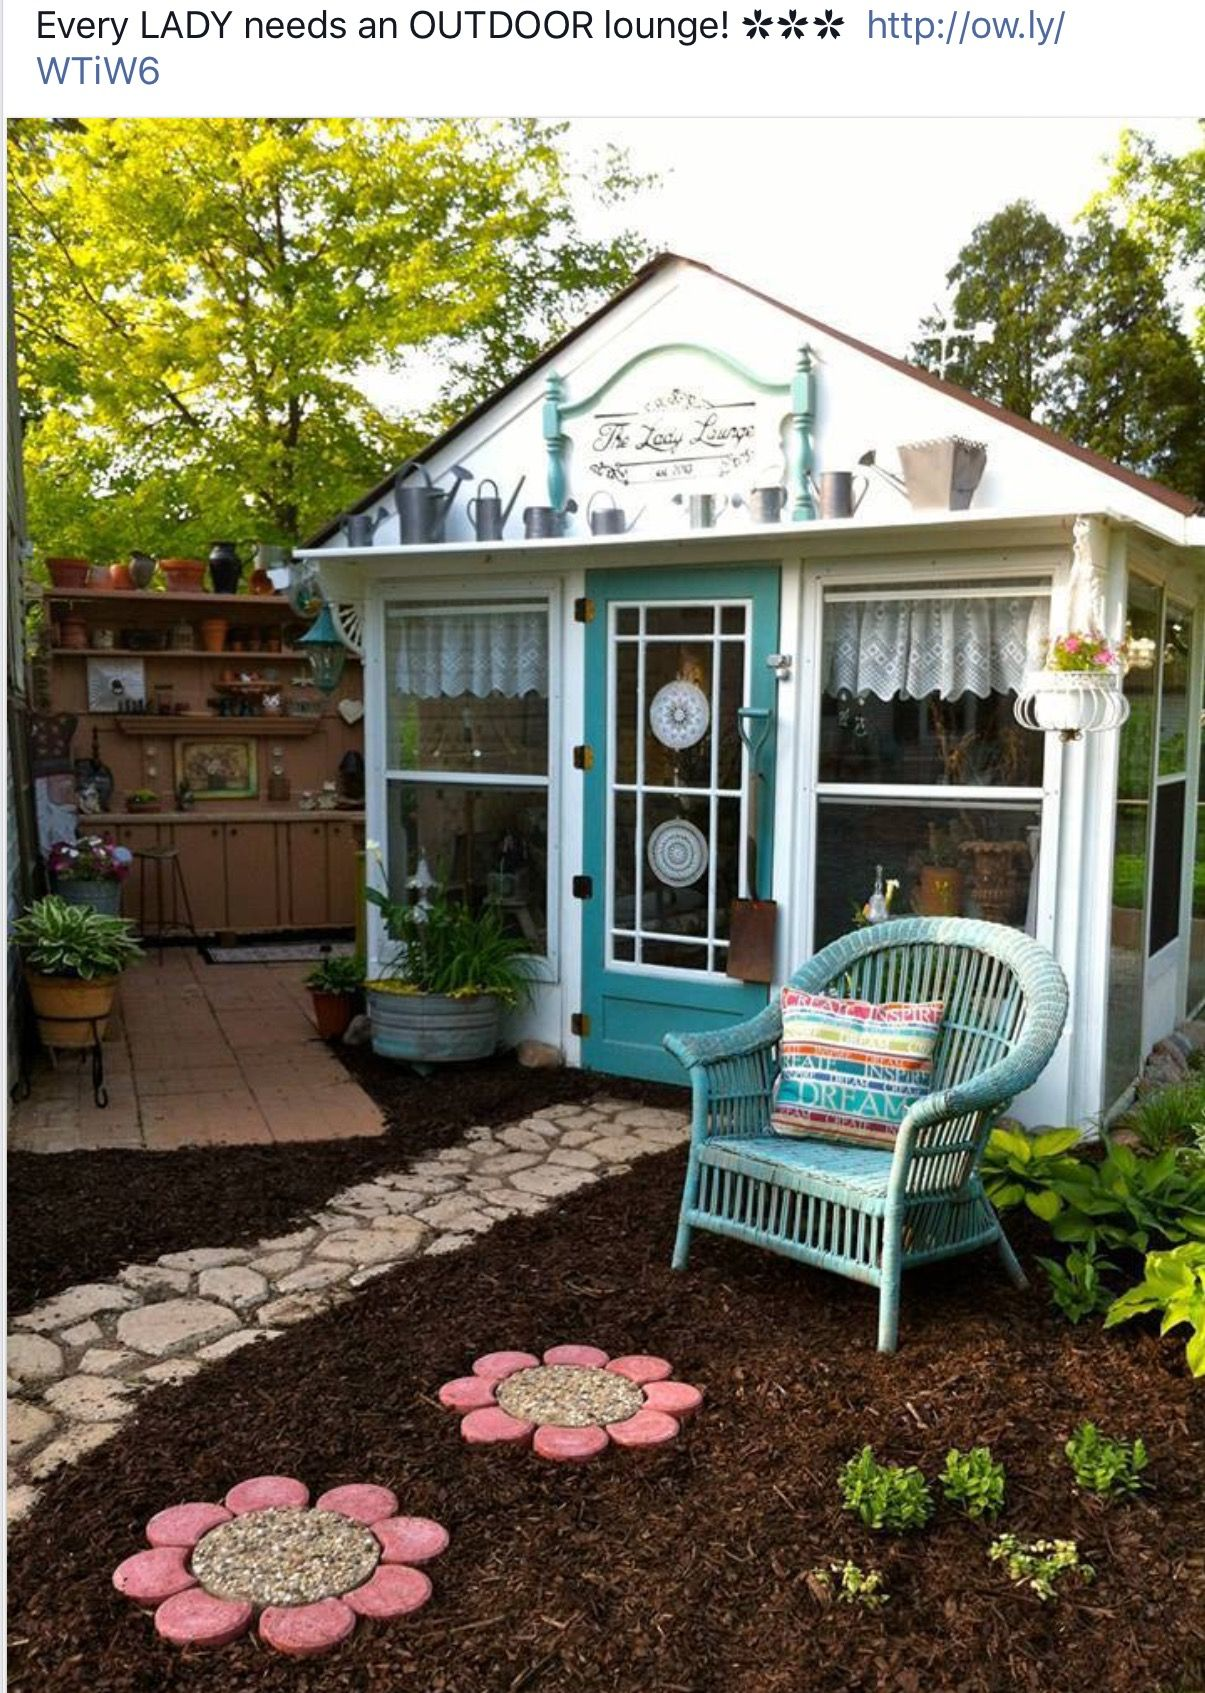 Pin By Jean Olson On Favorite Places And Spaces Backyard Sheds Shed She Sheds Backyard garden kit jamaica